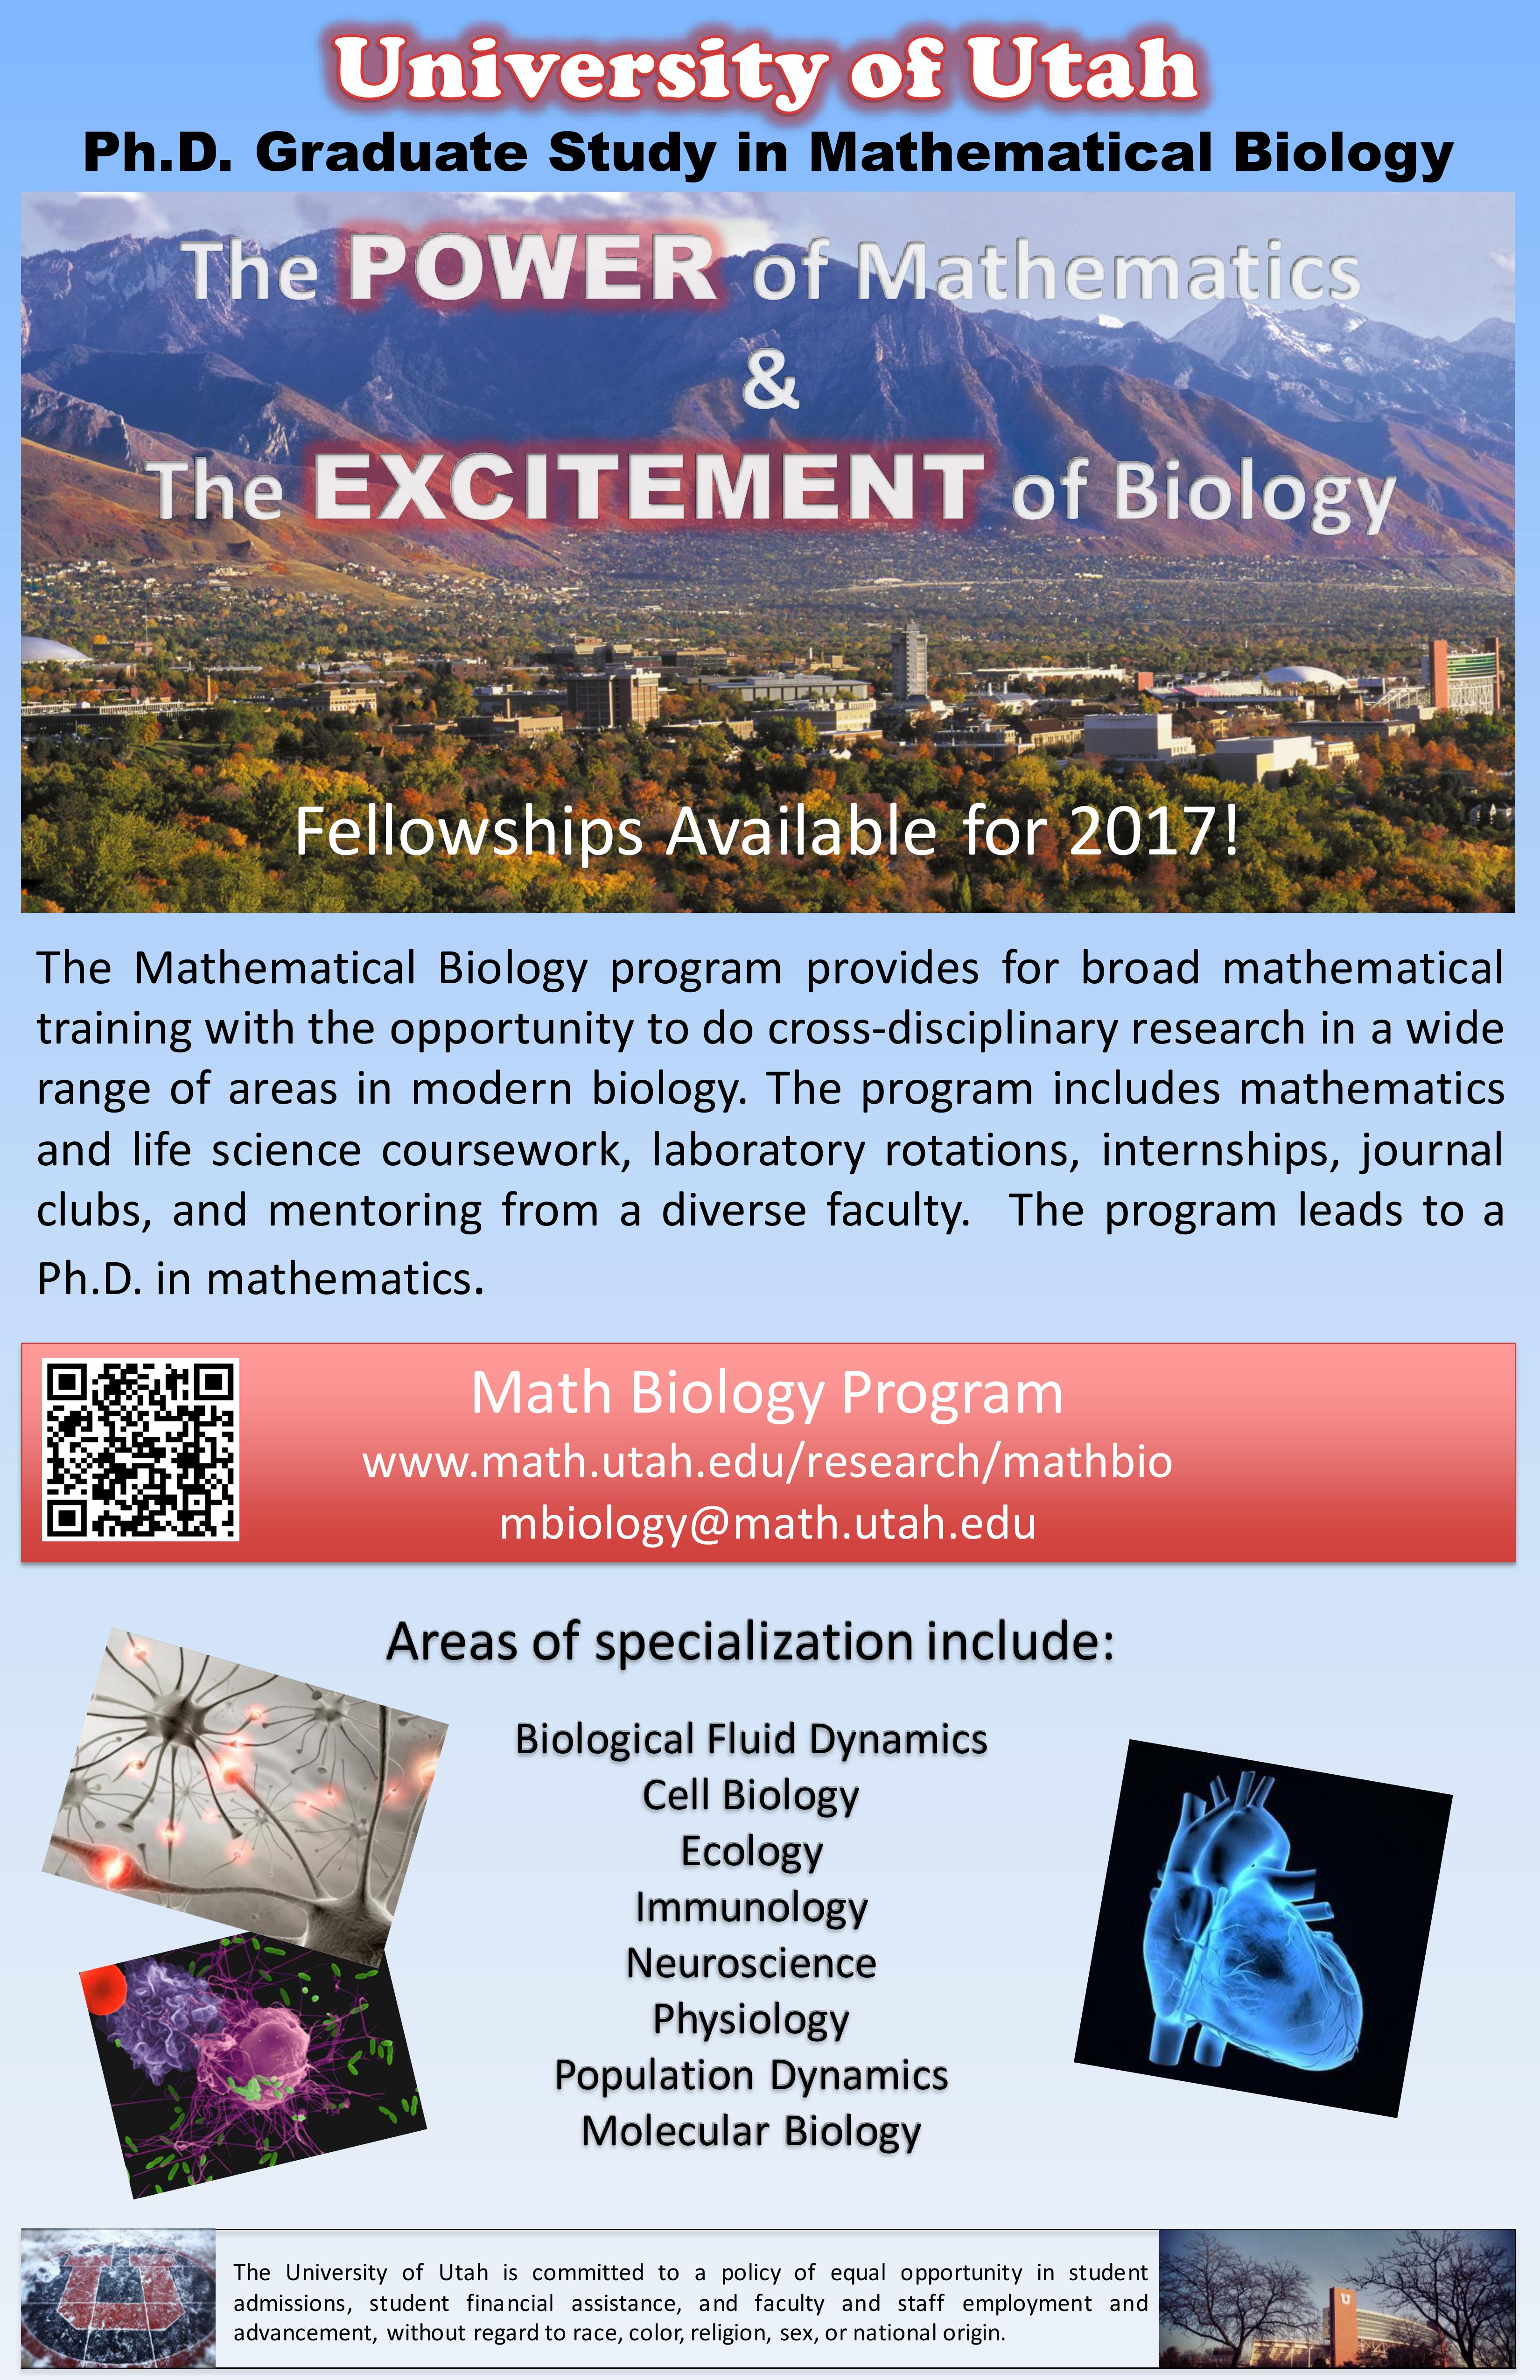 Graduate Mathematical Biology Program